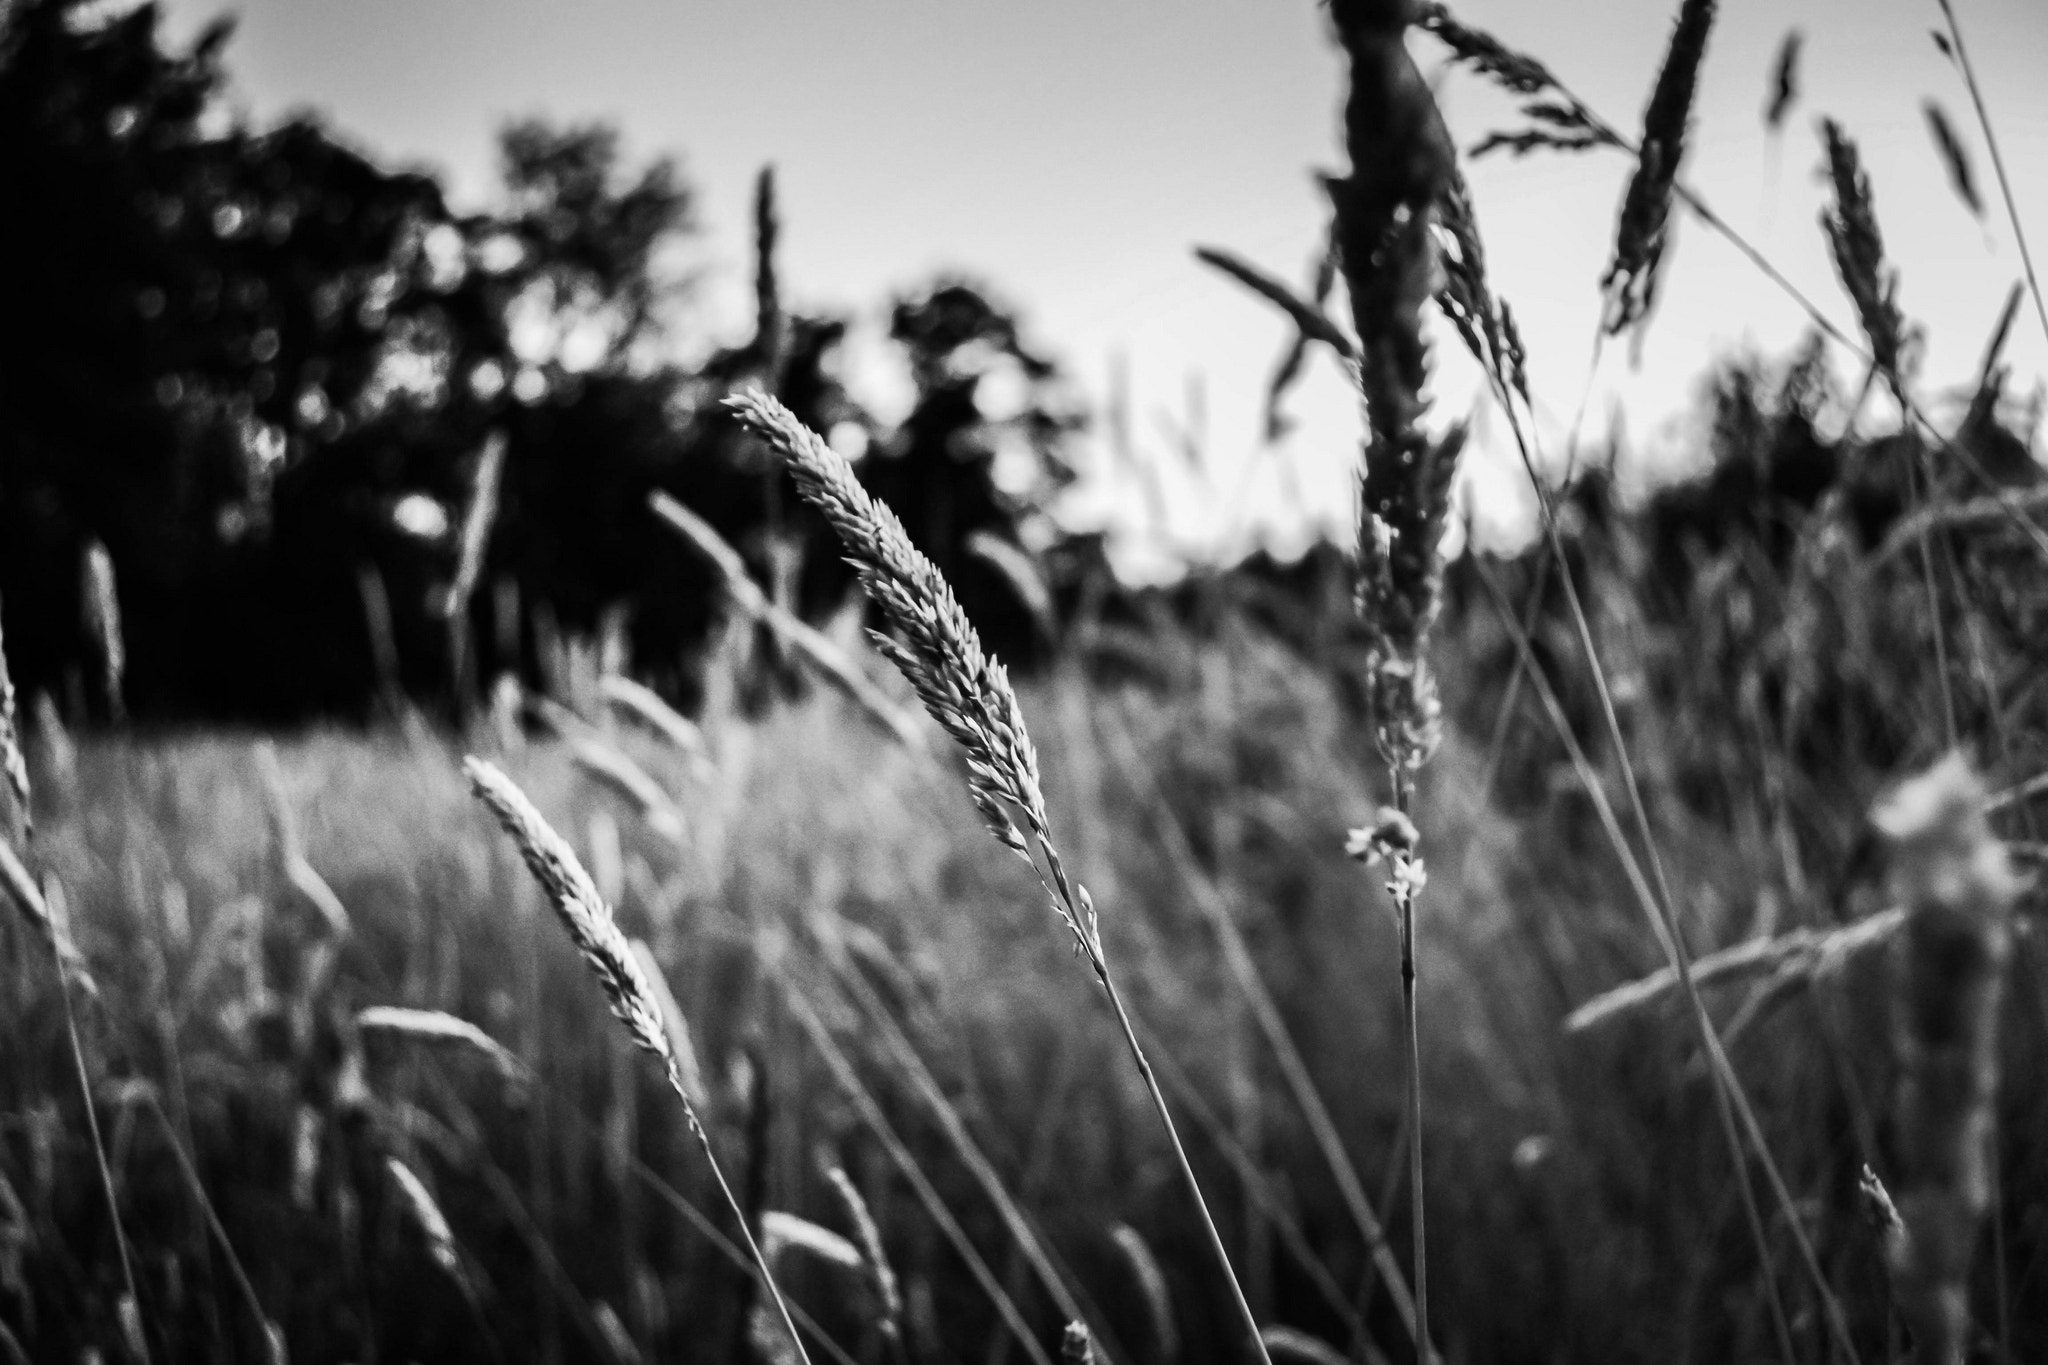 Photograph Tangled In This Trampled Wheat by Garrett Ewing on 500px